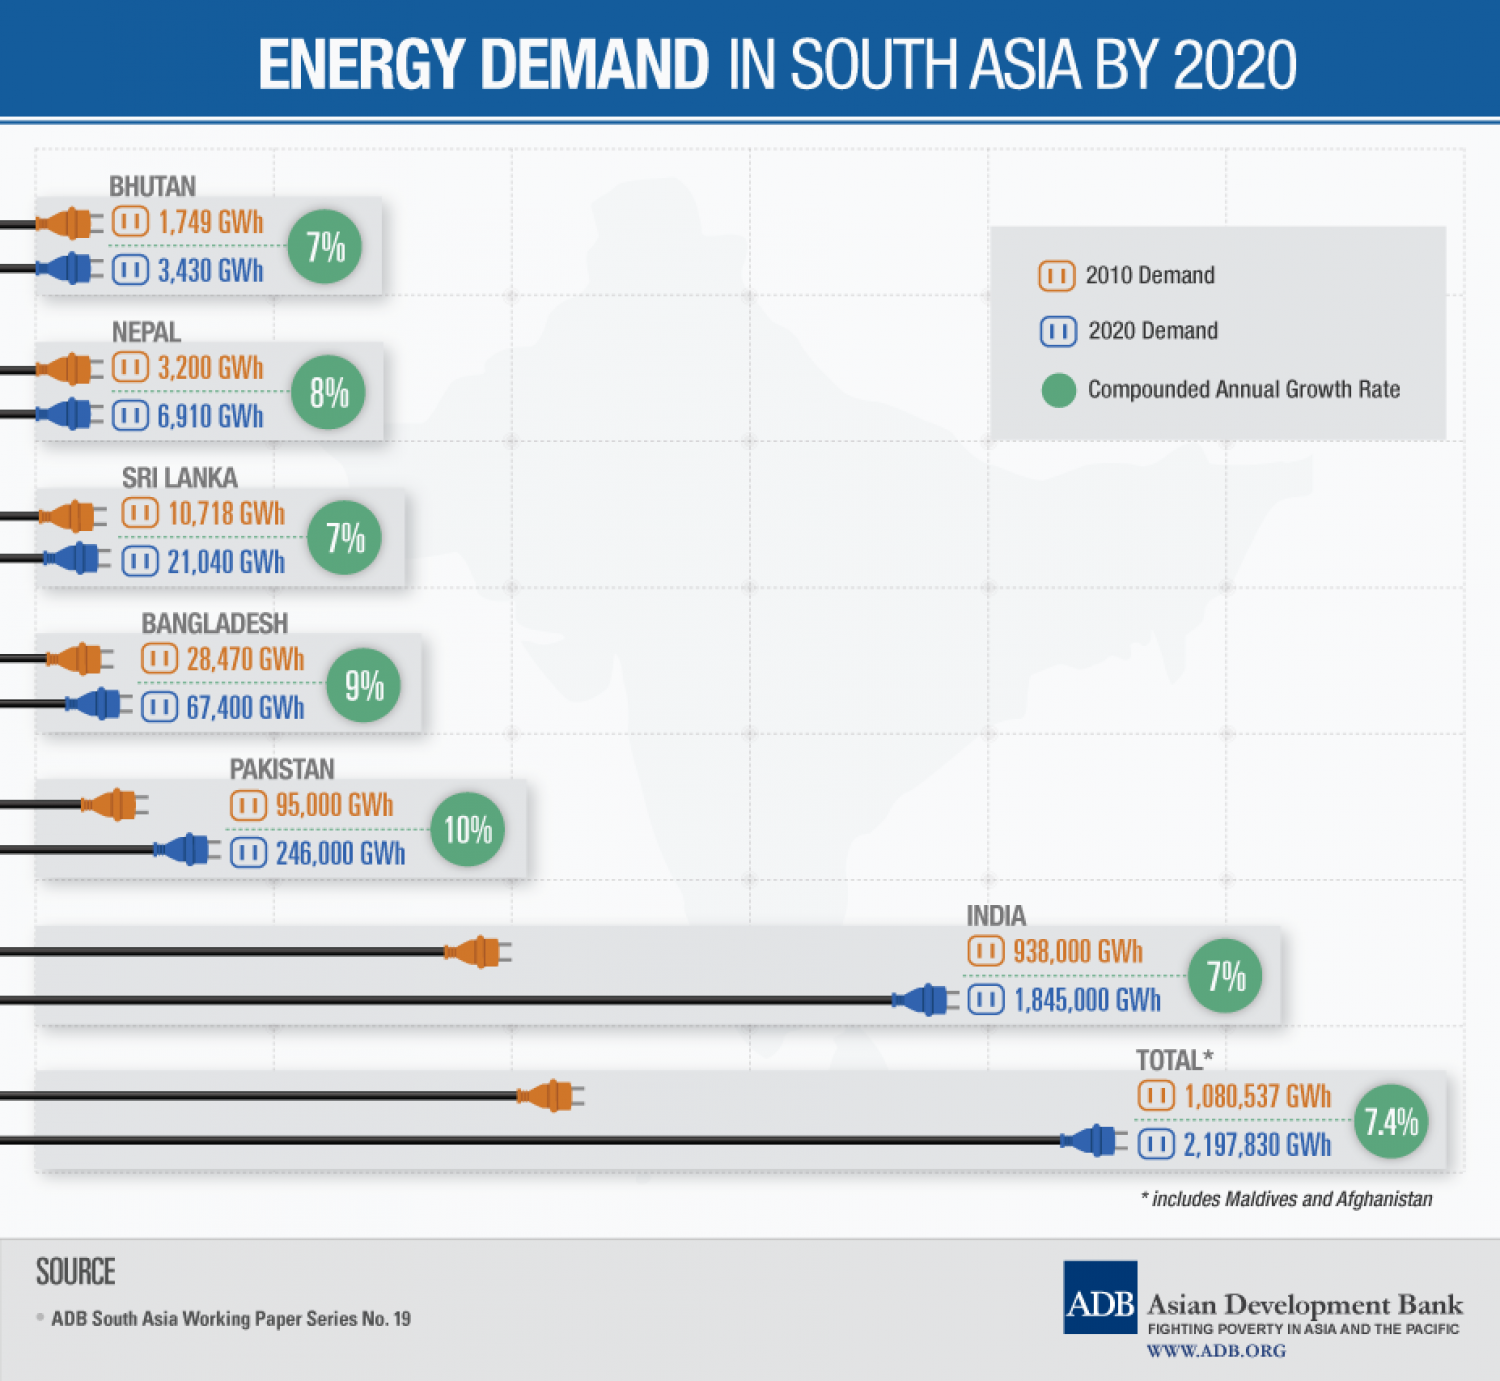 Energy Demand in South Asia by 2020 Infographic